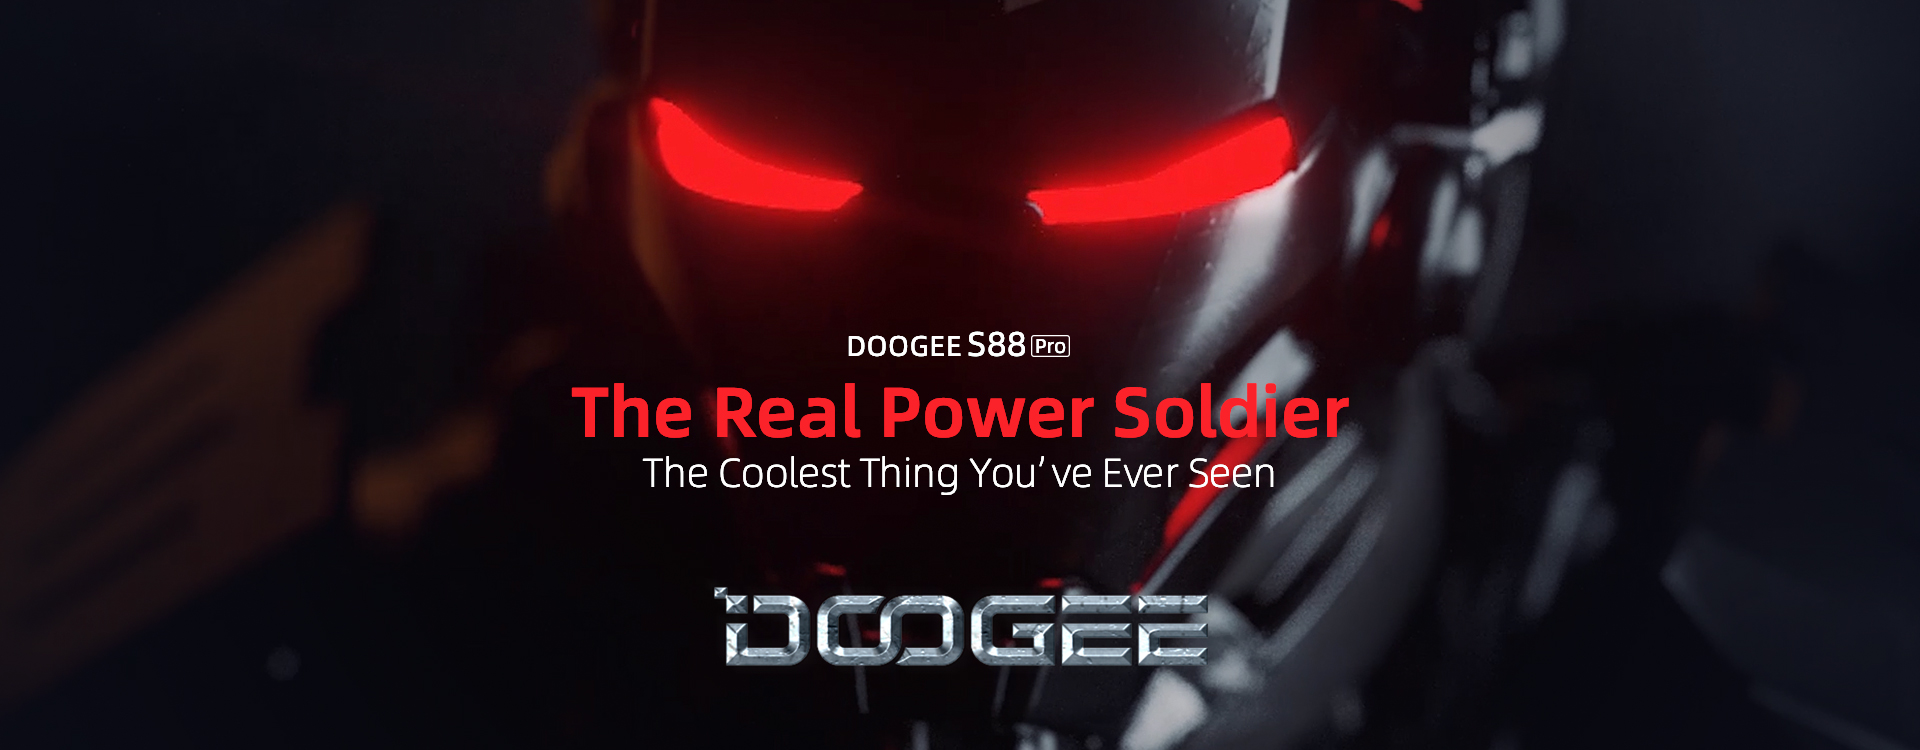 Doogee S88Pro, The Coolest Rugged Phone Global Giveaway